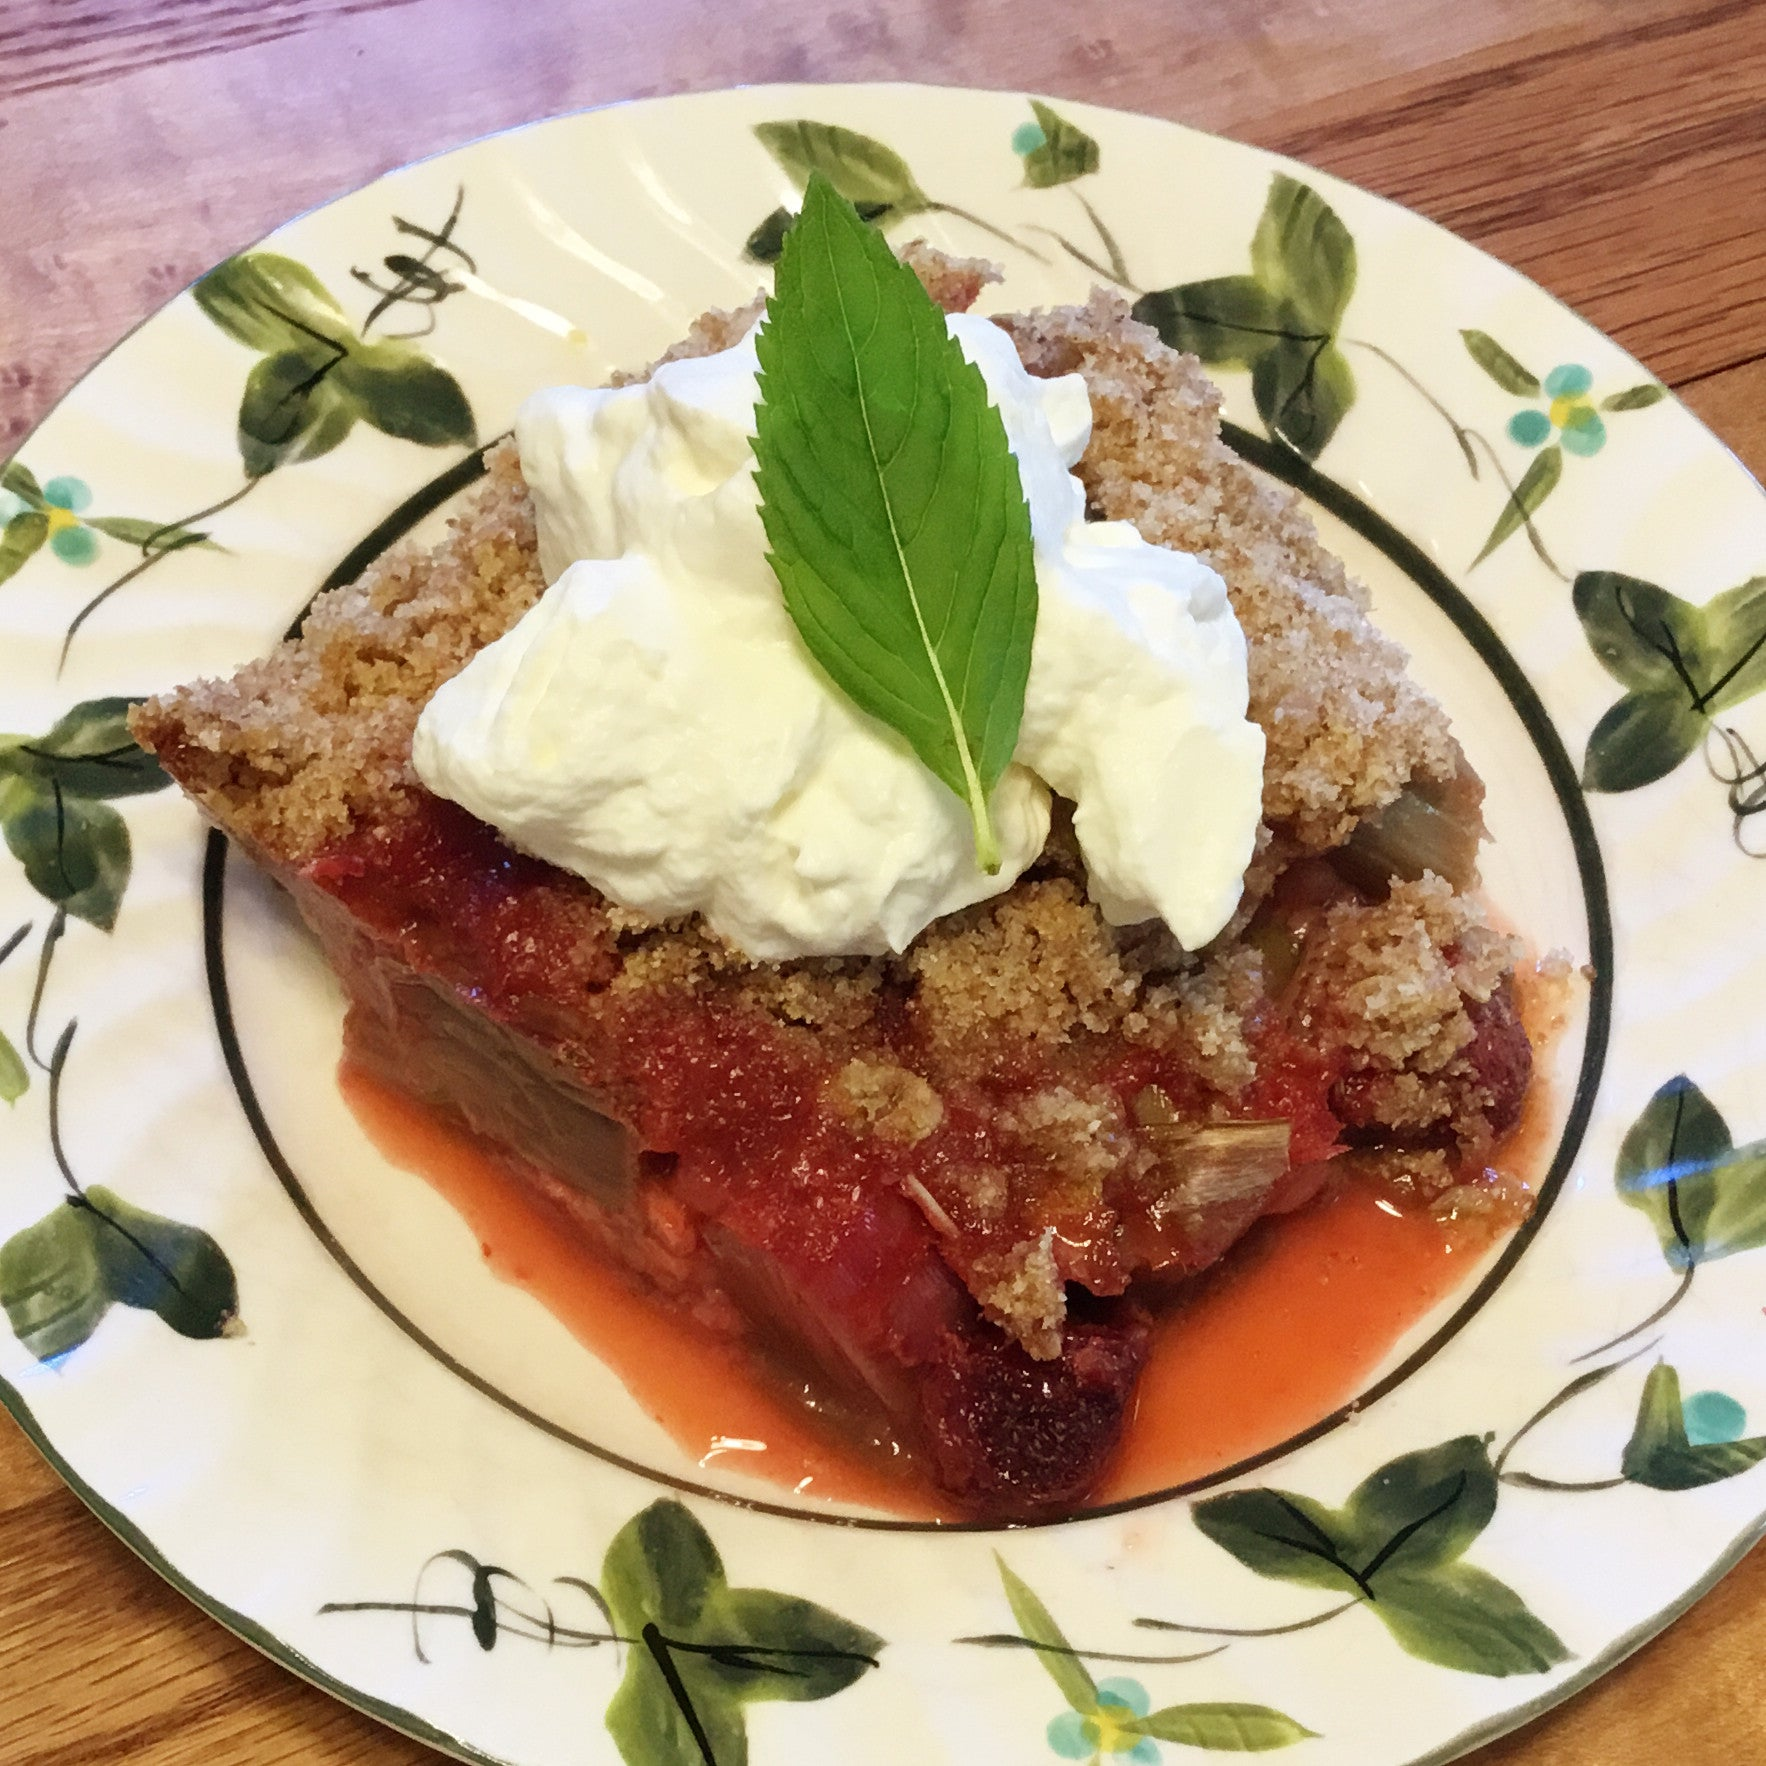 Strawberry Rhubarb Cobbler Crisp Recipe - Artisanal Boards